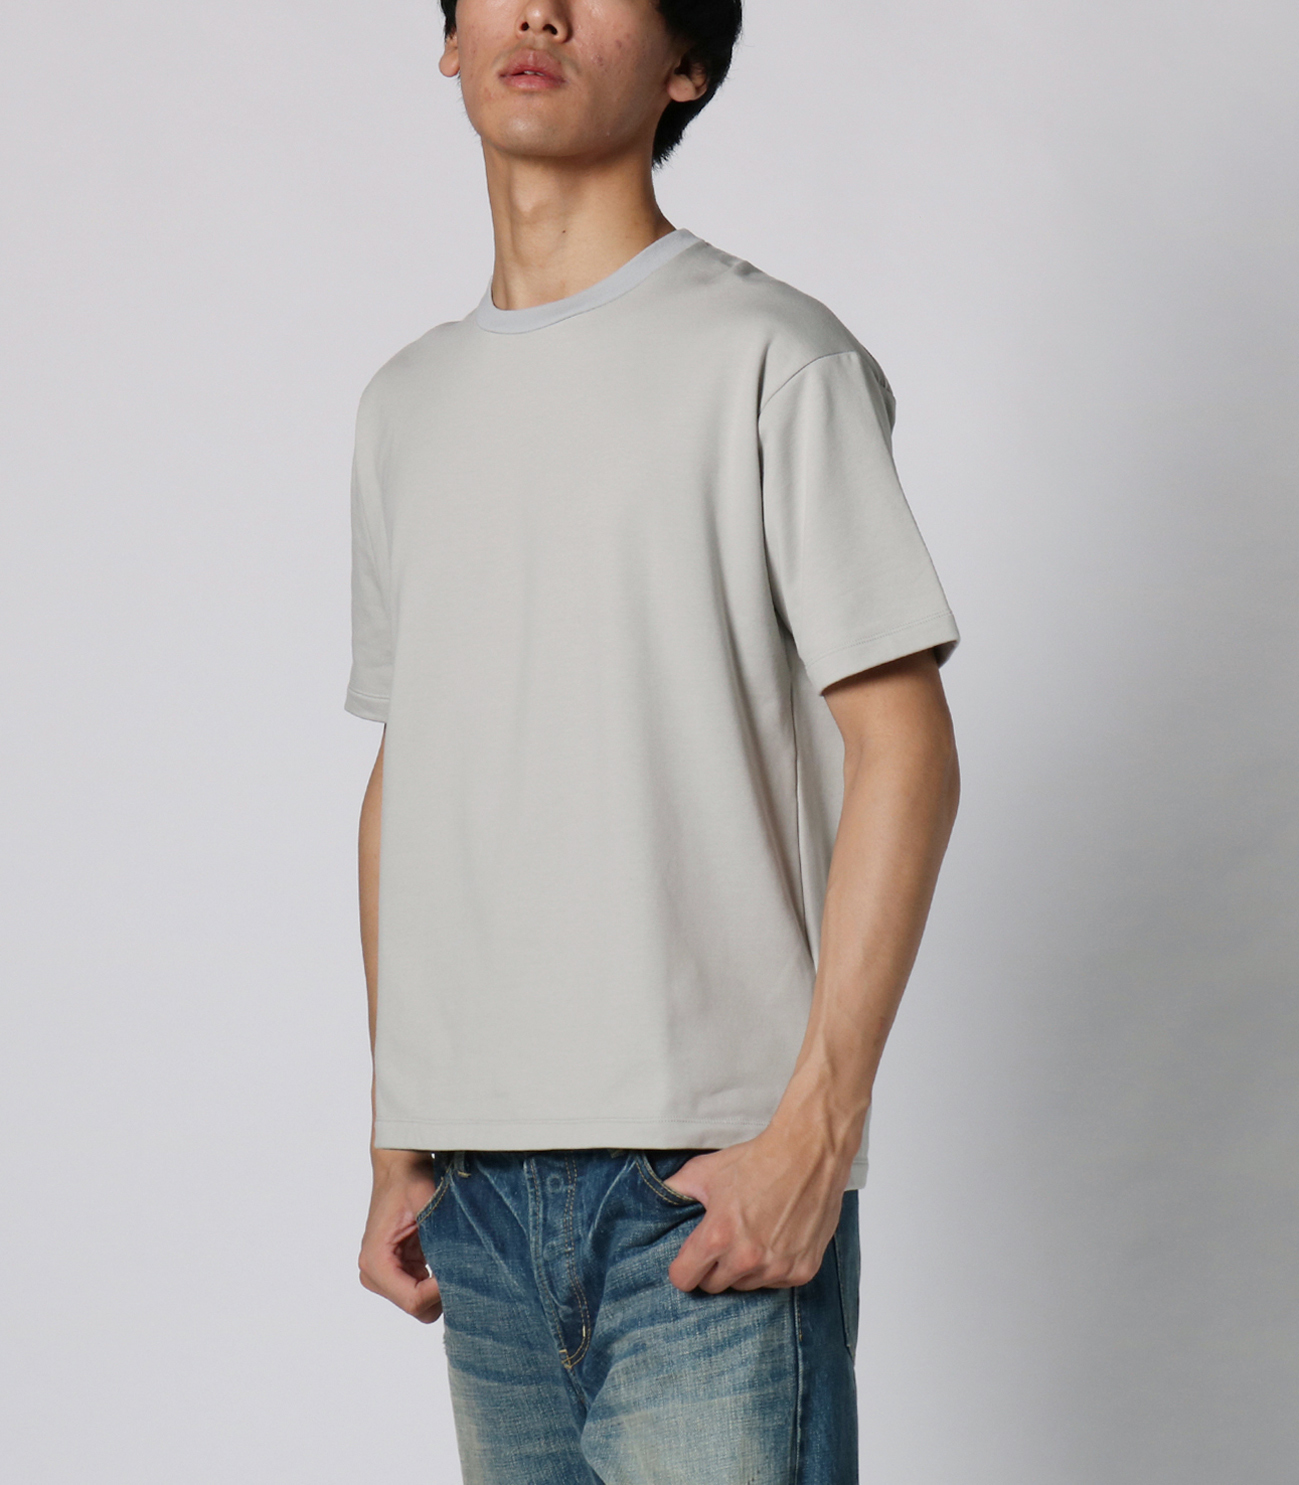 stretch terry s/s crewneck 詳細画像 pale grey 6